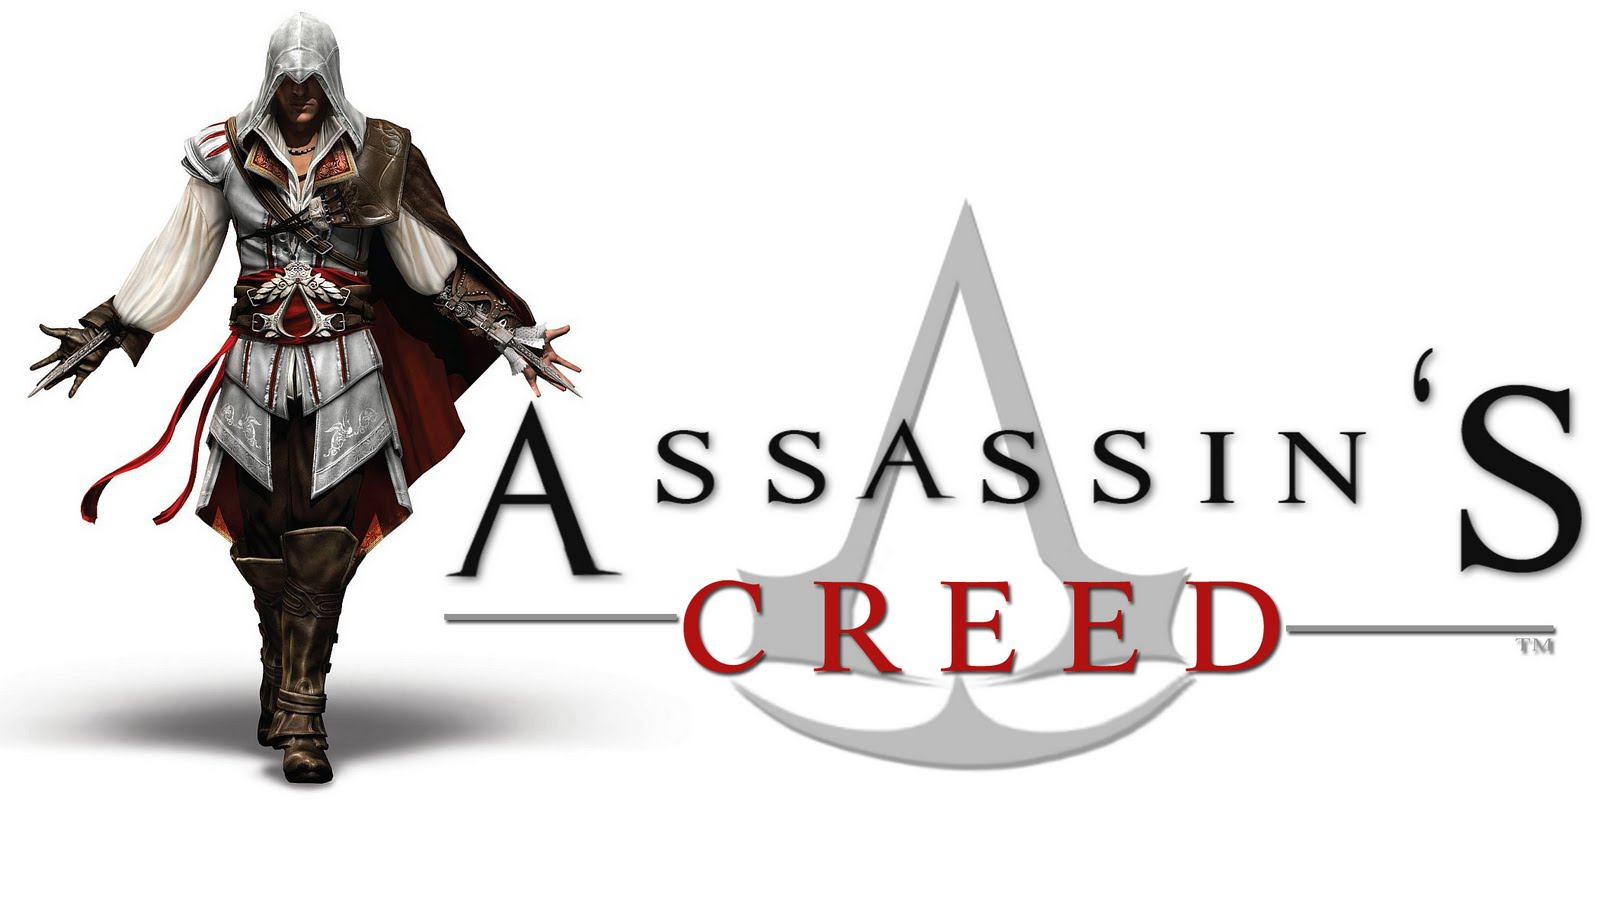 Dream's Come True: Assassin's Creed Logo: dreamscometrueblog.blogspot.com/2010/05/assassins-creed-logo.html